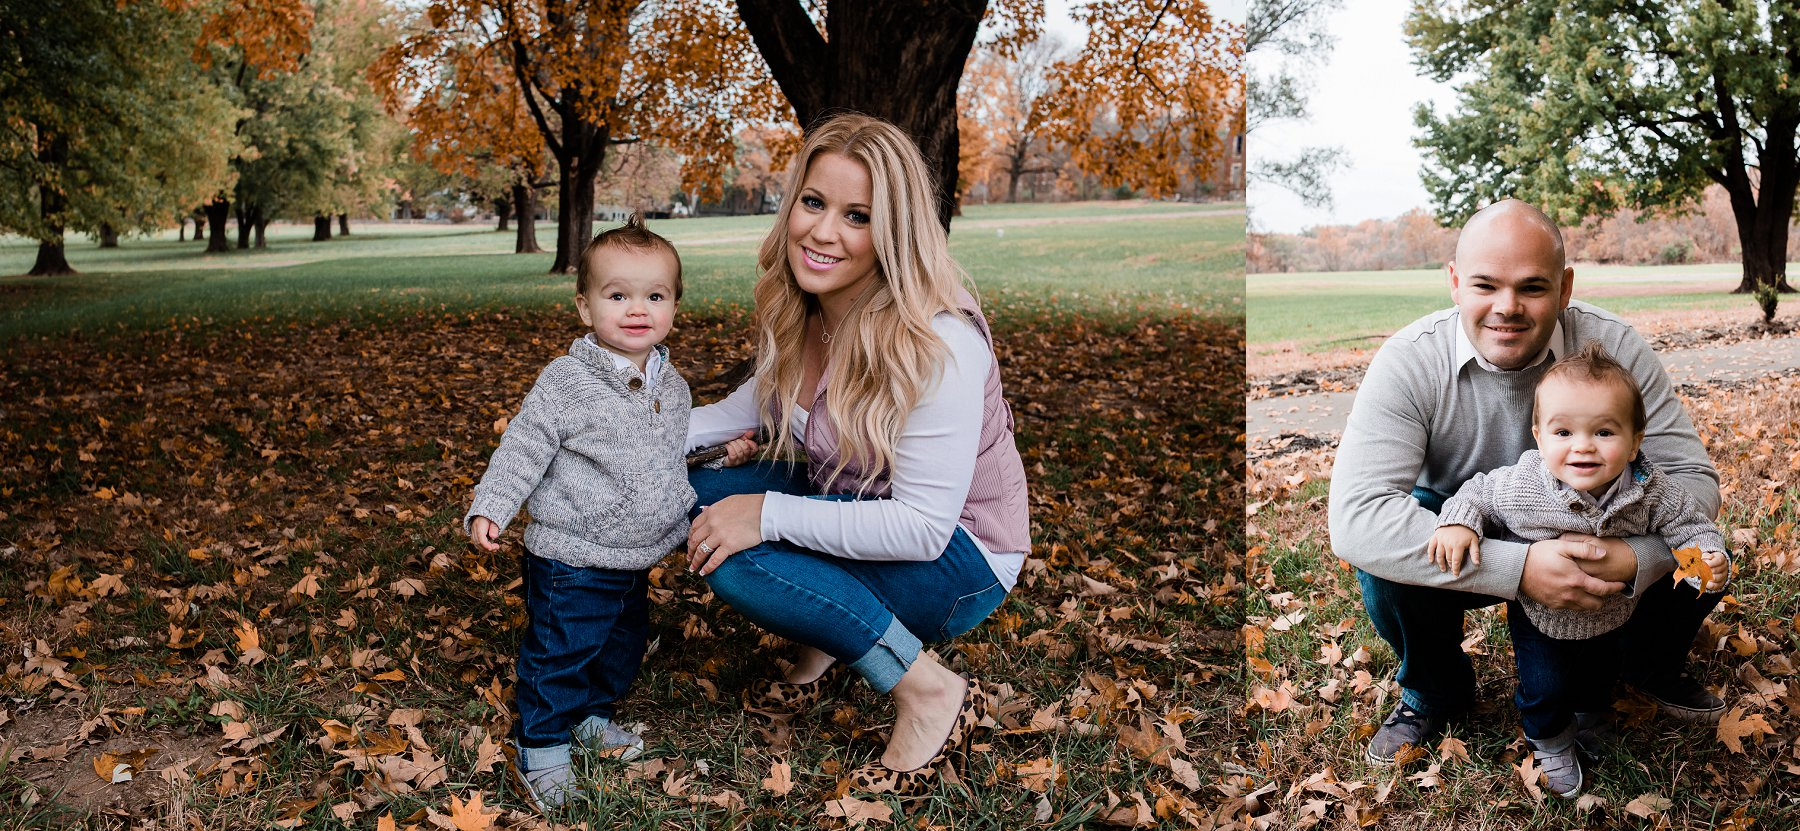 Fall Family Photography at Belvoir WInery by Family Photographer in Kansas City, Merry Ohler (3)